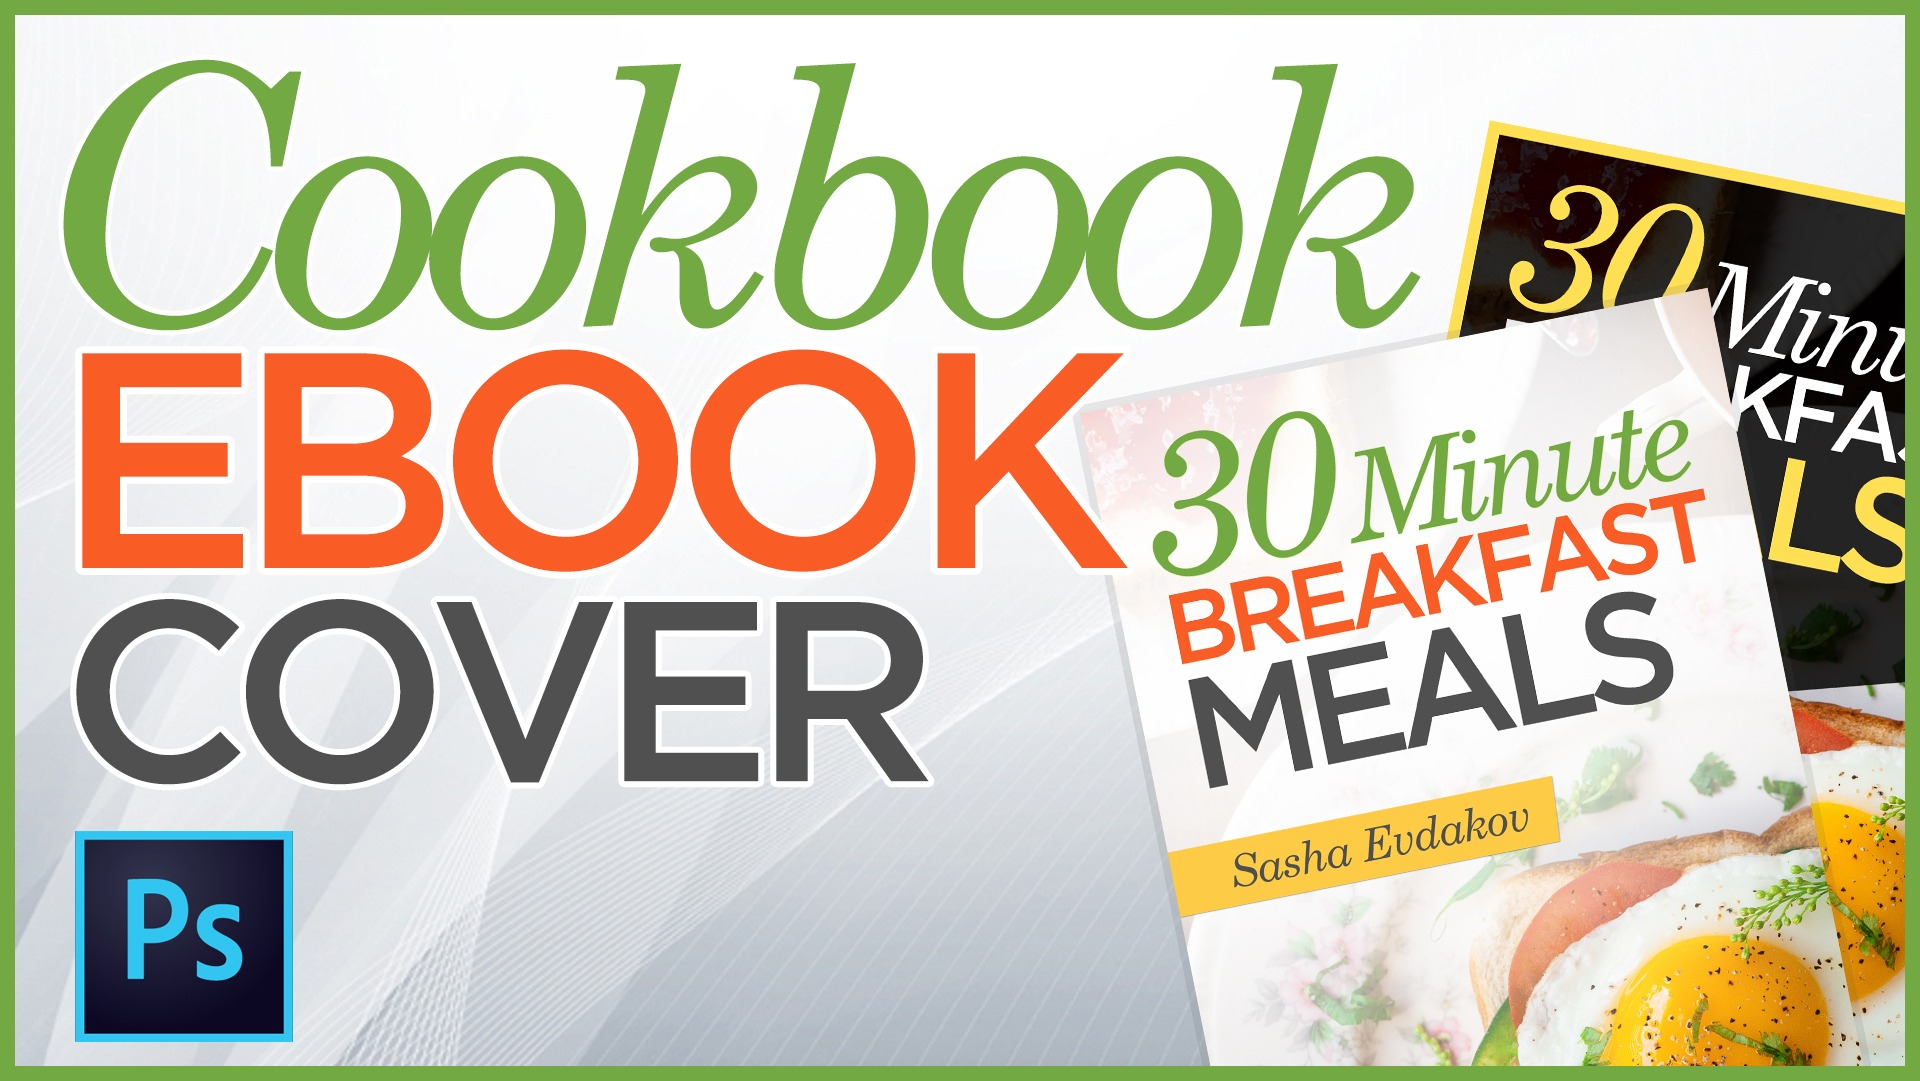 Photoshop Tutorial: Design a Cook Book Cover for Your Amazon Kindle Book!